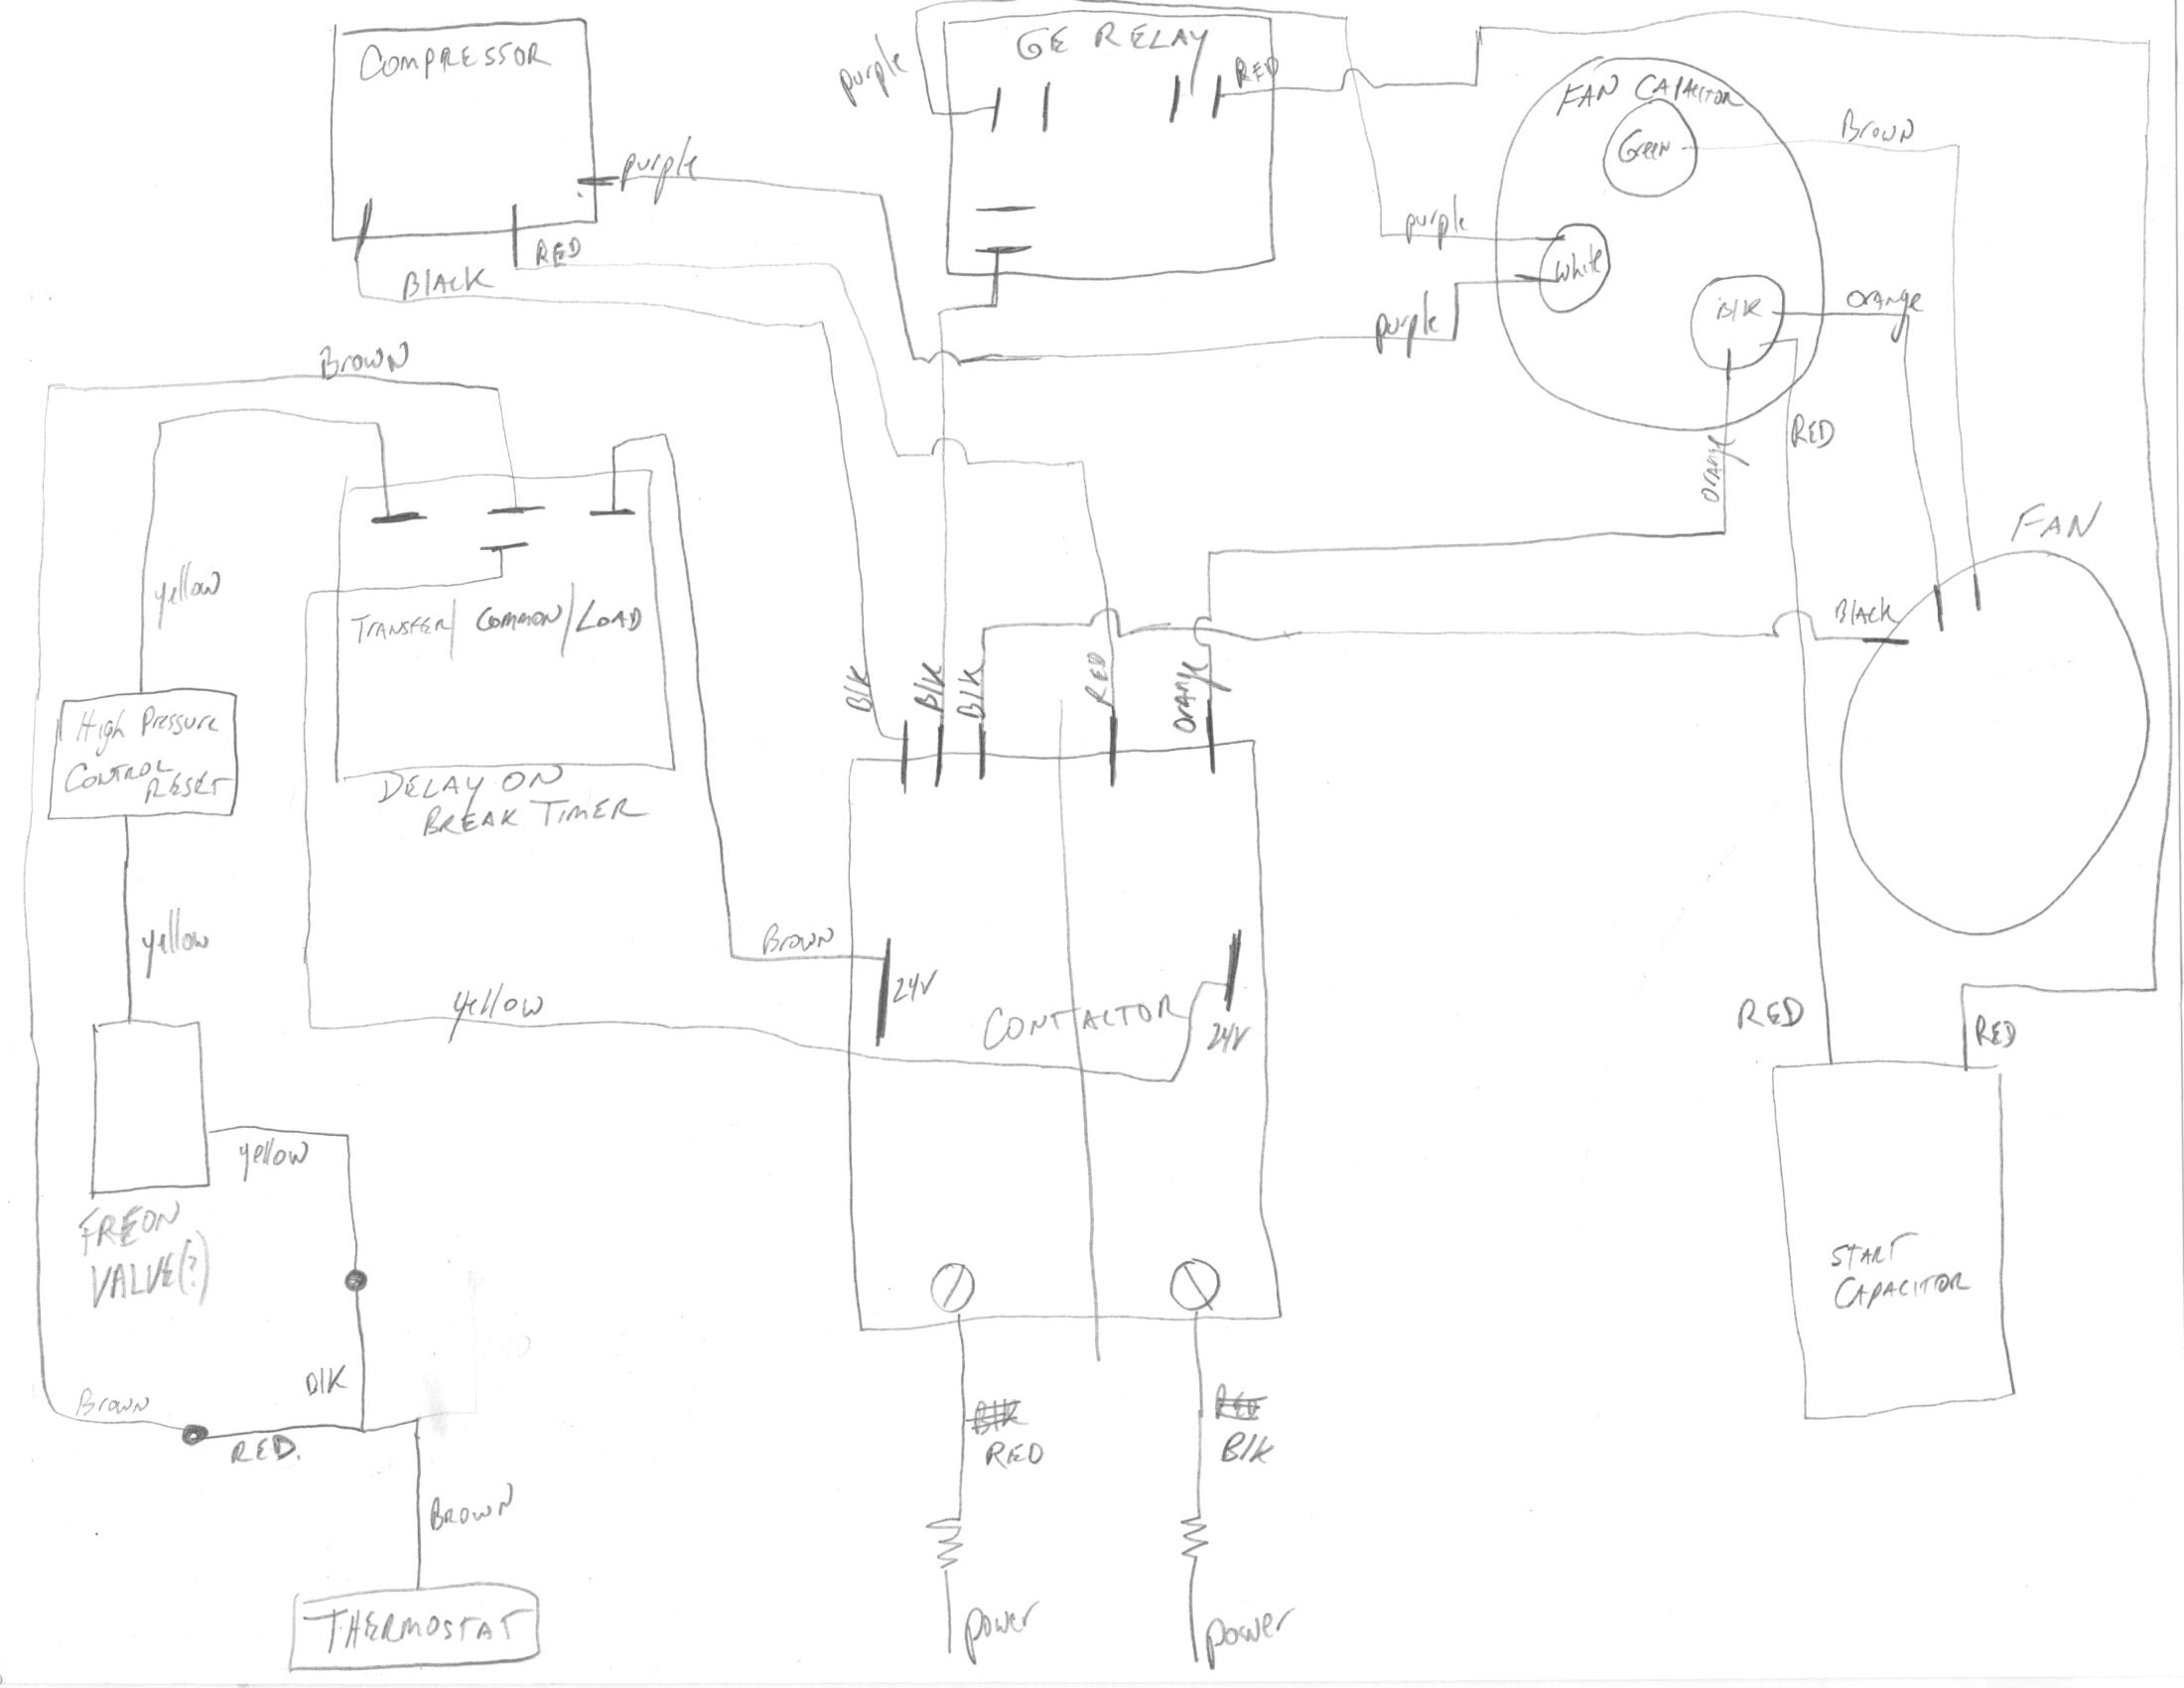 Digital Thermostat Wiring Diagram Ruud.Lennox Thermostat